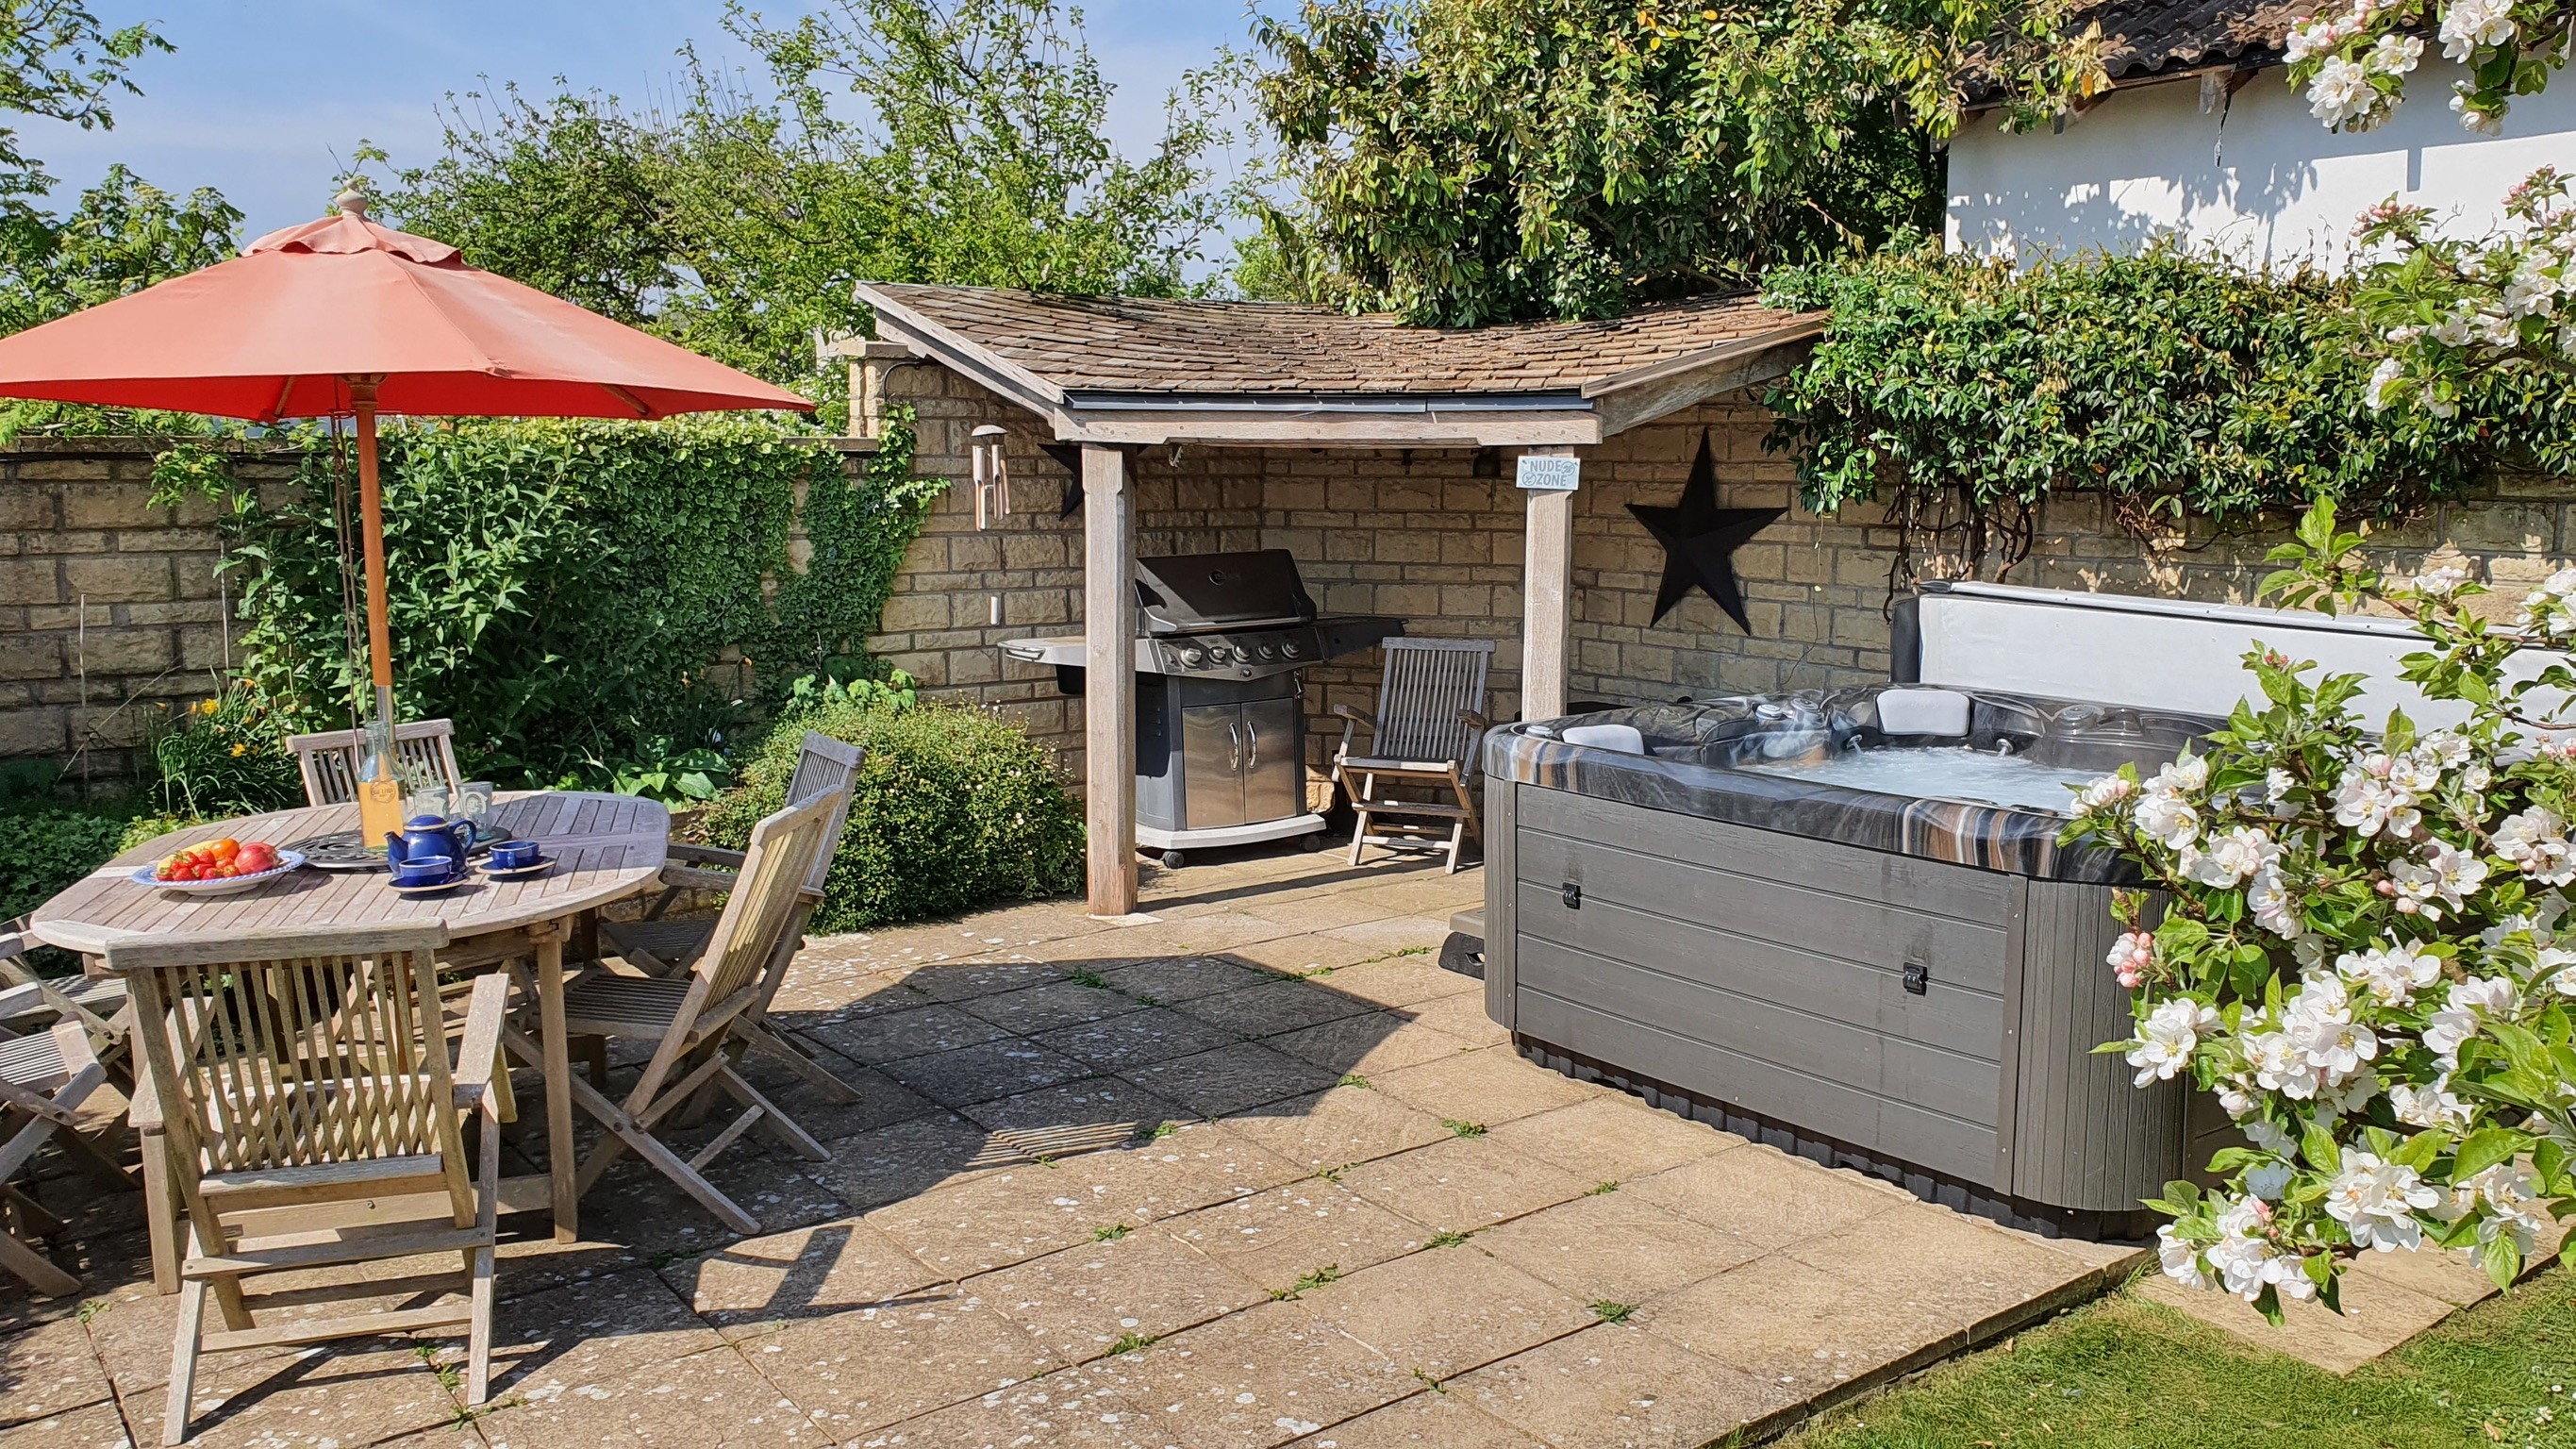 Outdoor dining area, barbecue and hot tub